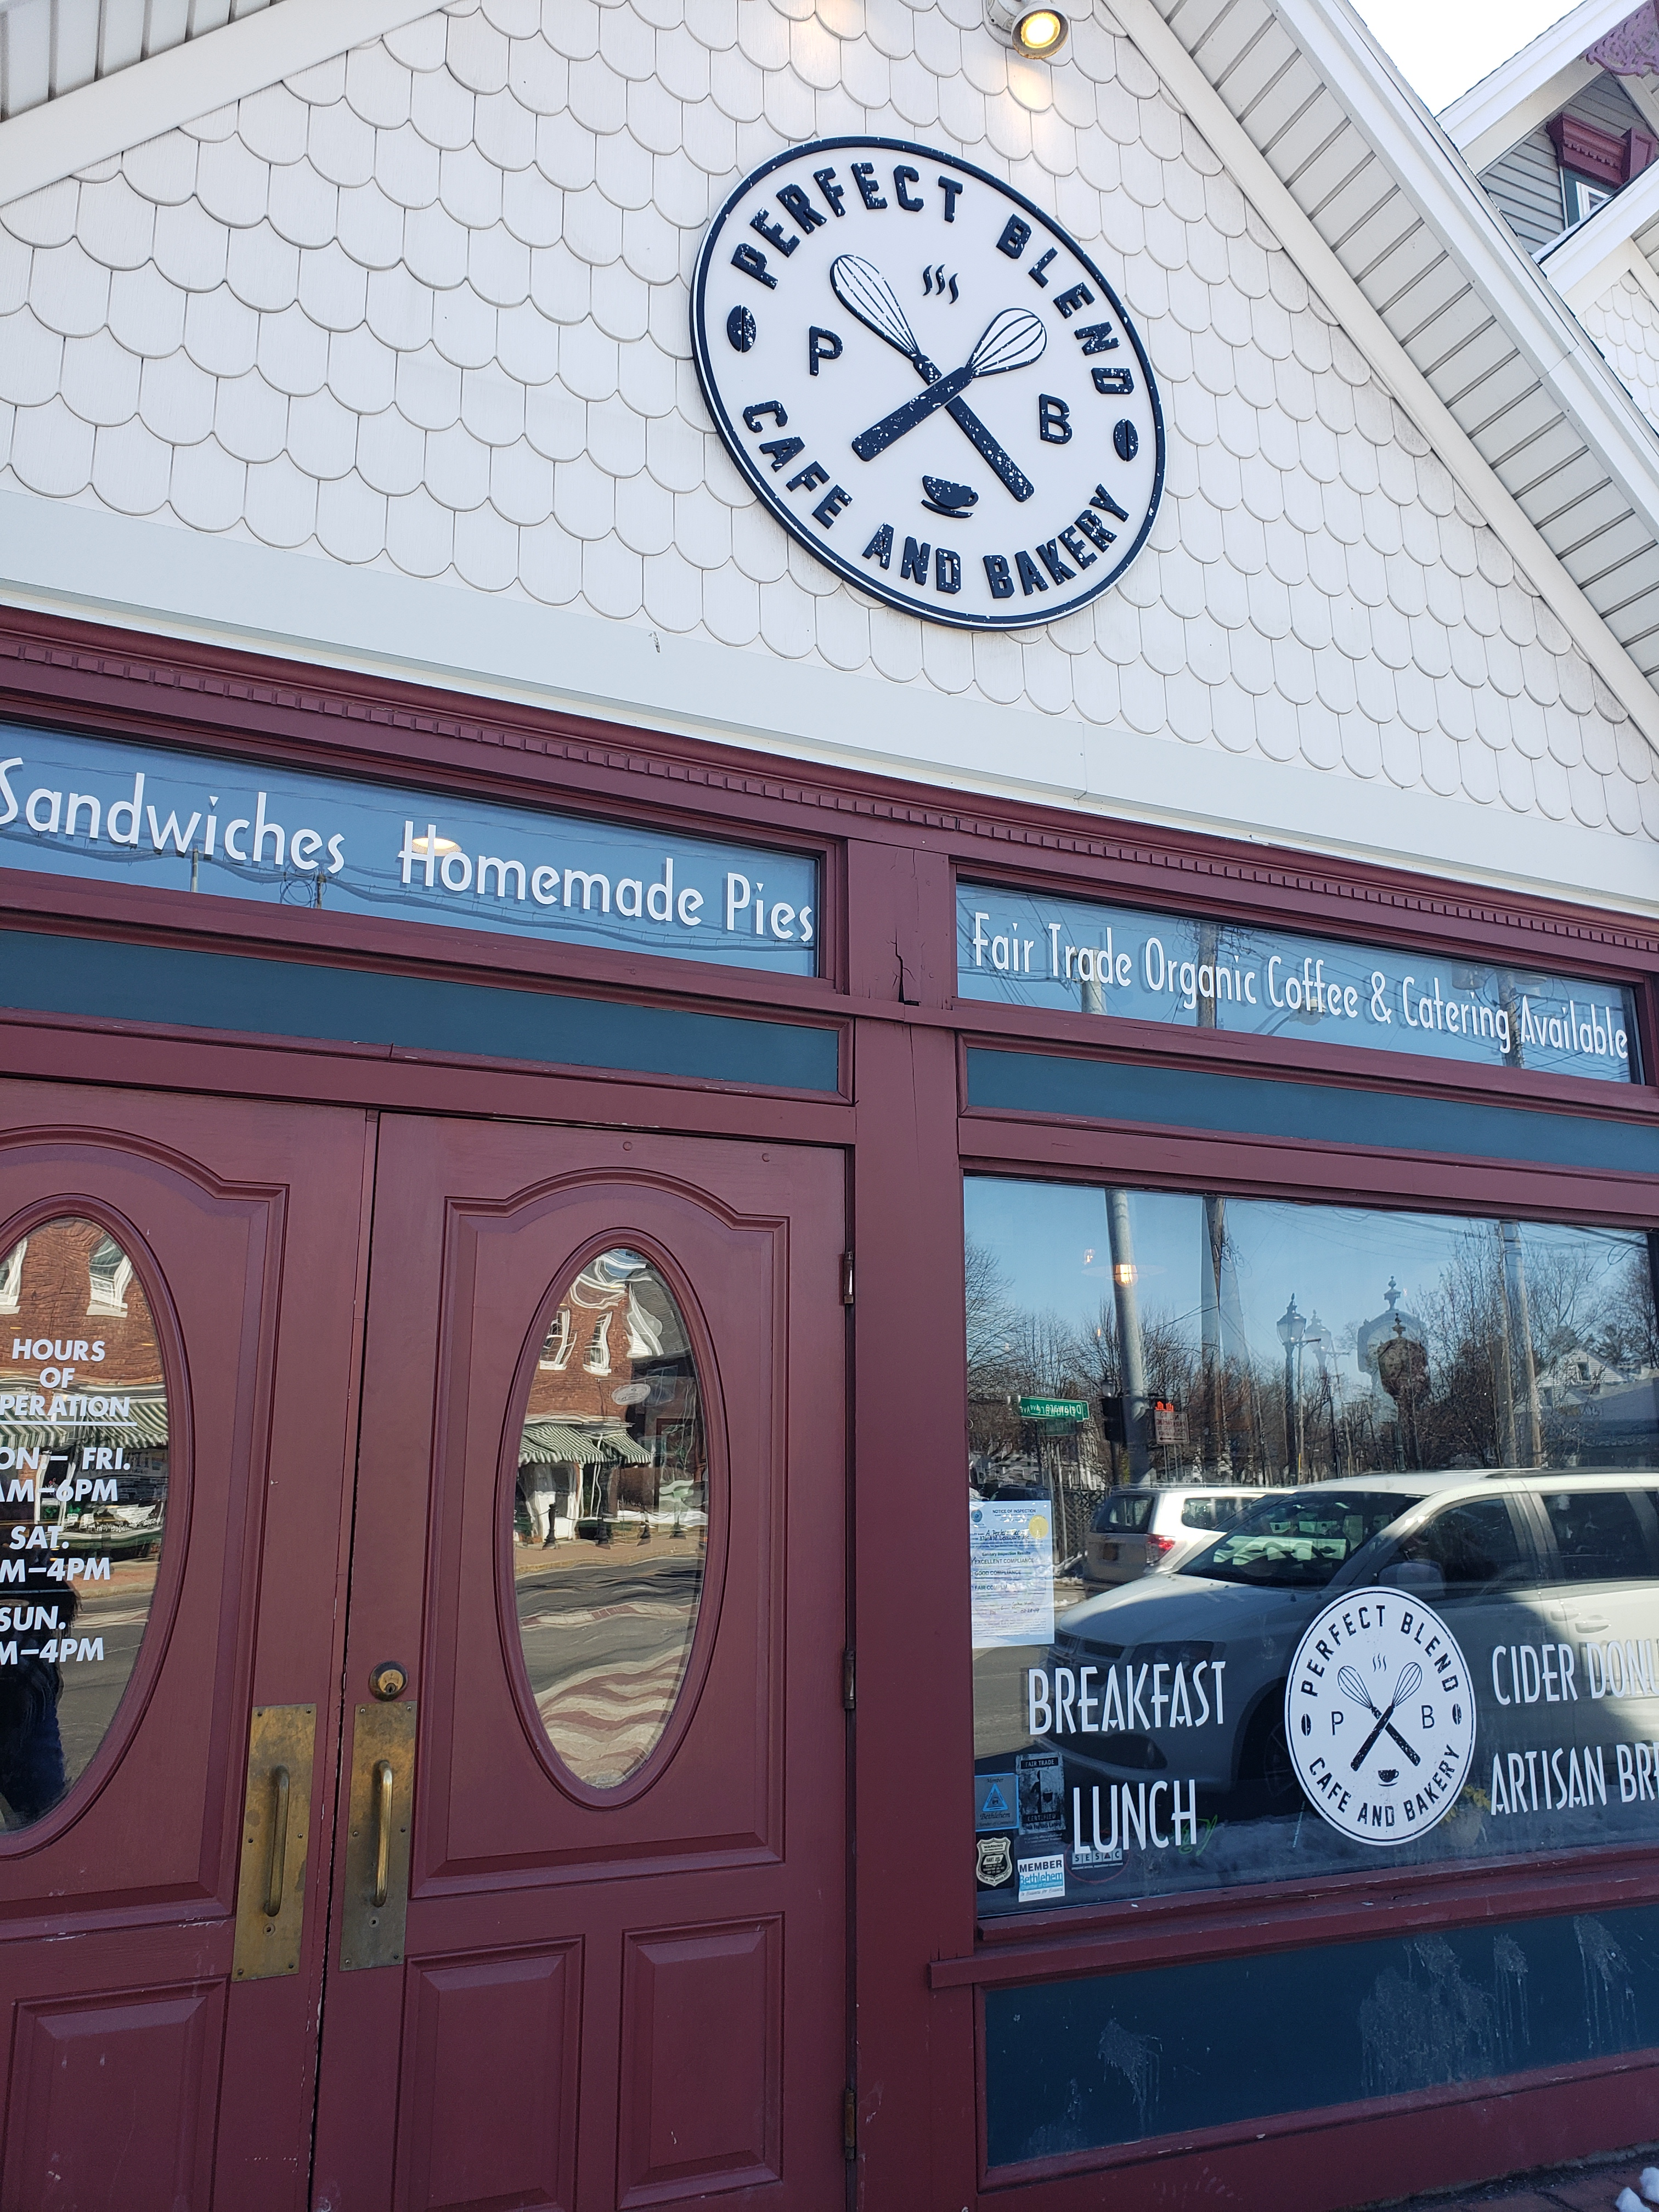 Perfect Blend, Cafe & Bakery, Delmar, NY - Coffee & life